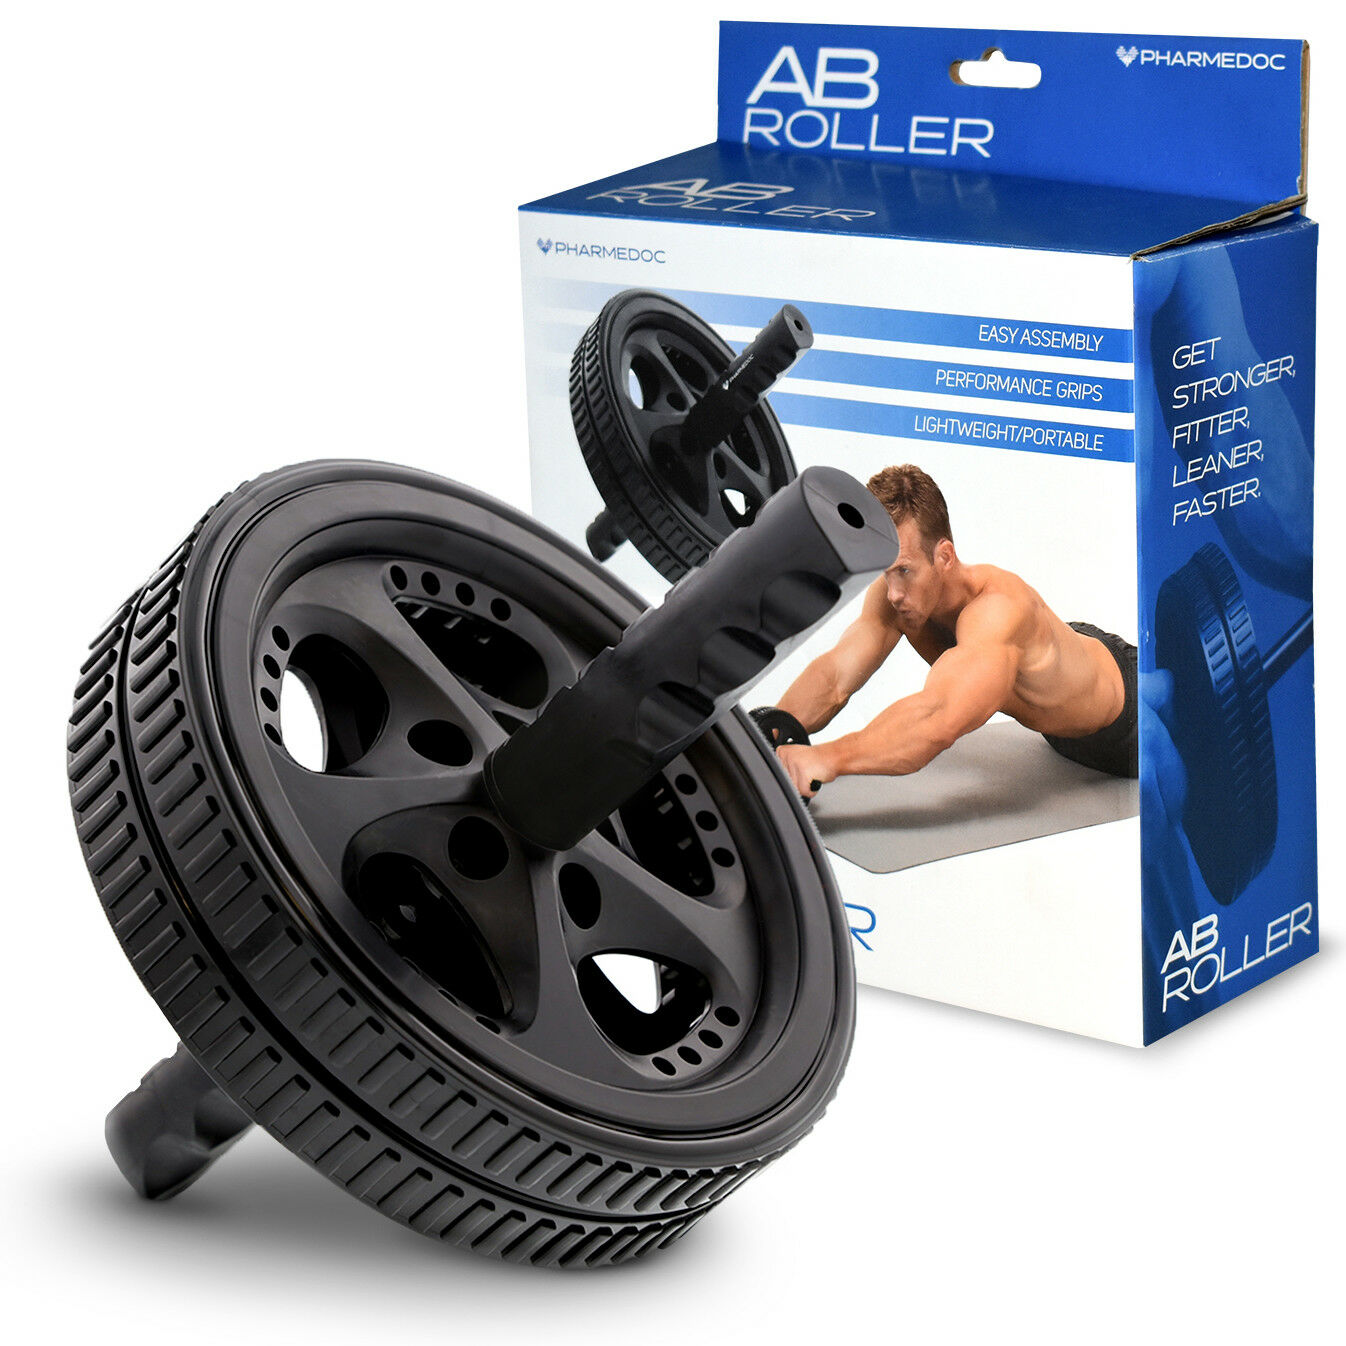 PharMeDoc Ab Roller Wheel - Abdominal Workout Equipment for